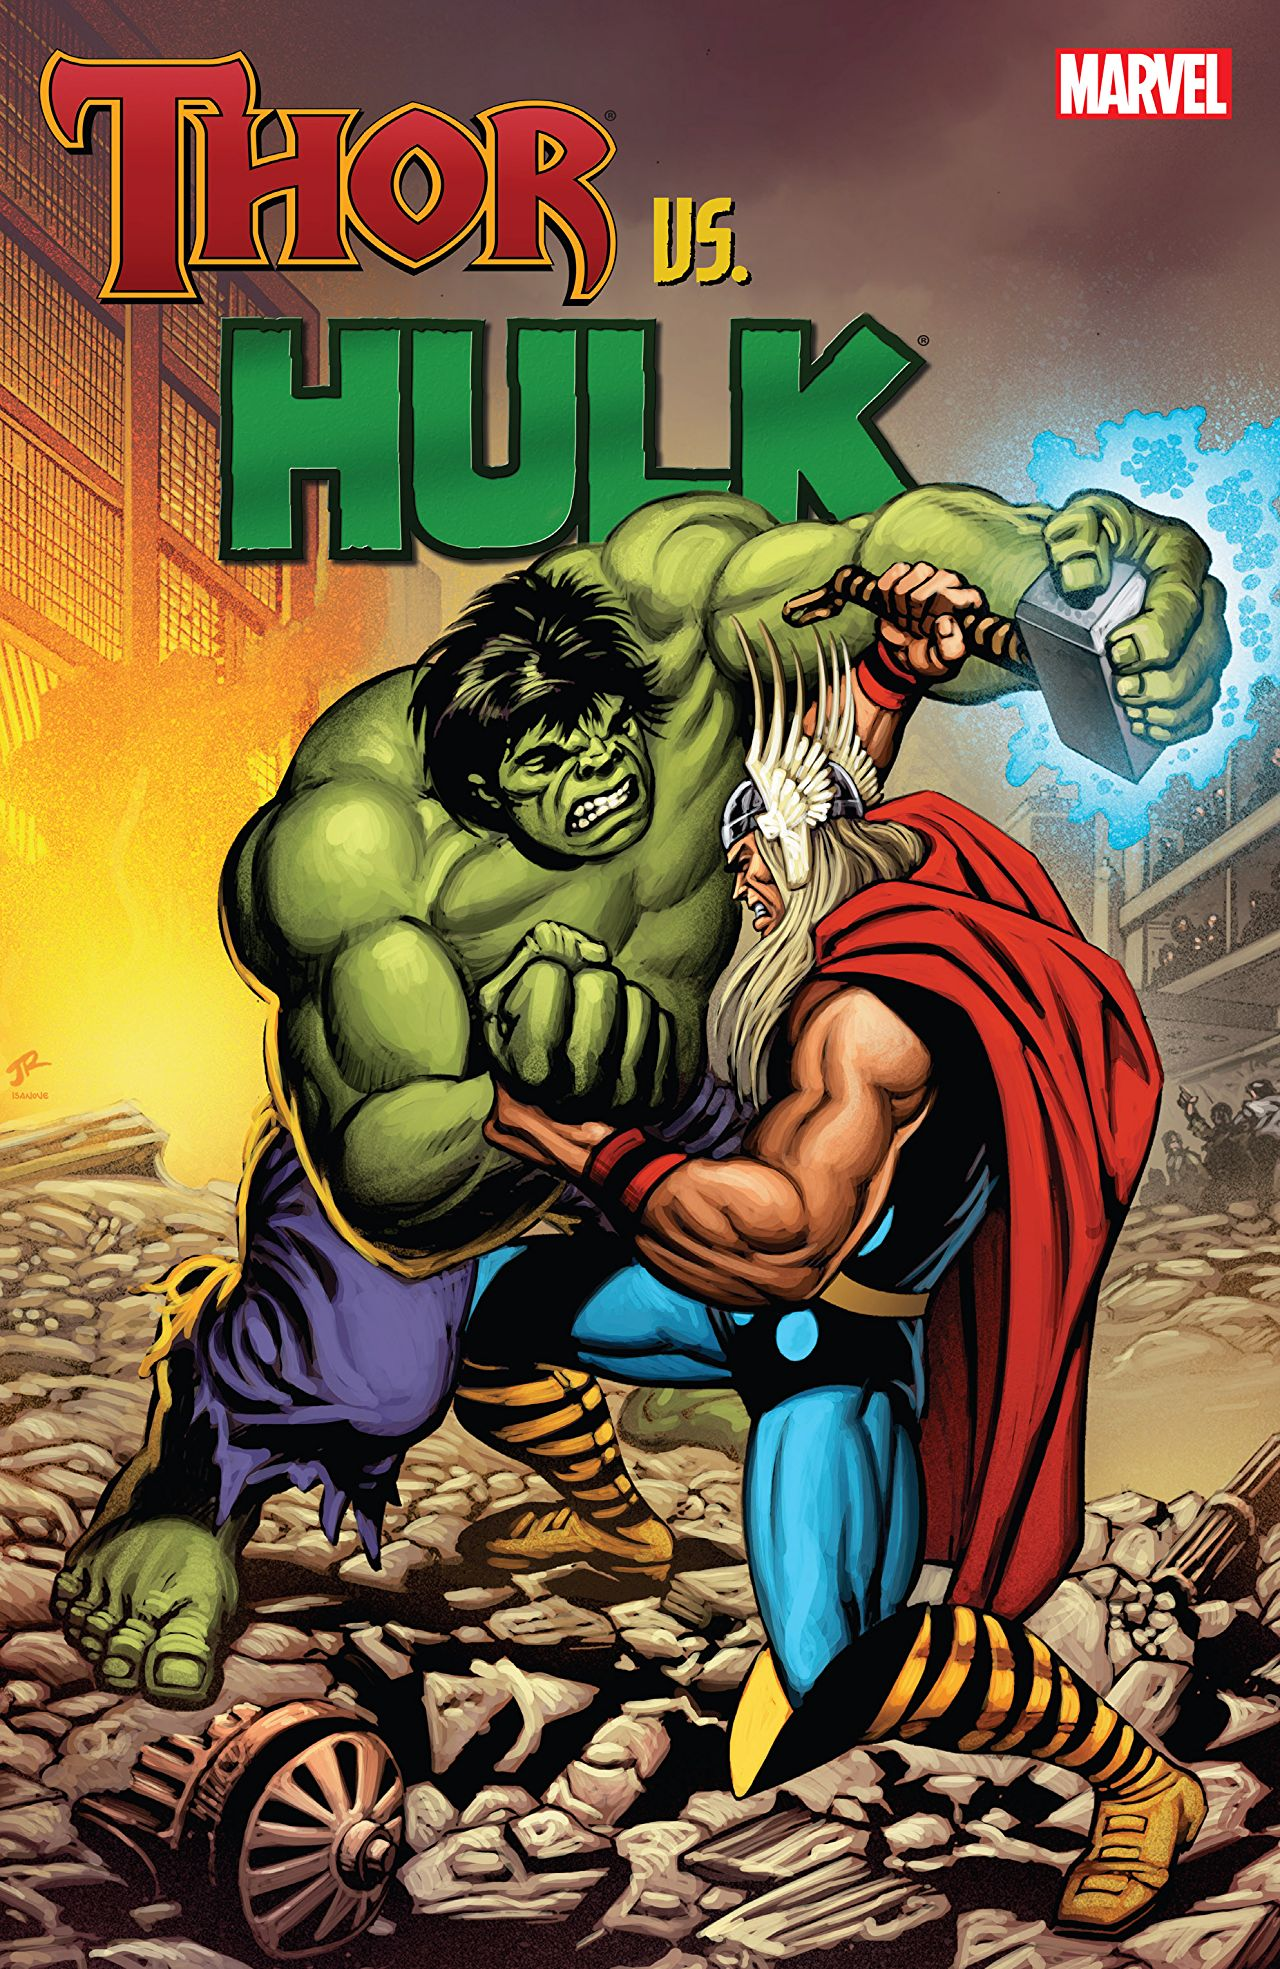 'Thor vs. Hulk' review: A slew of epic battles